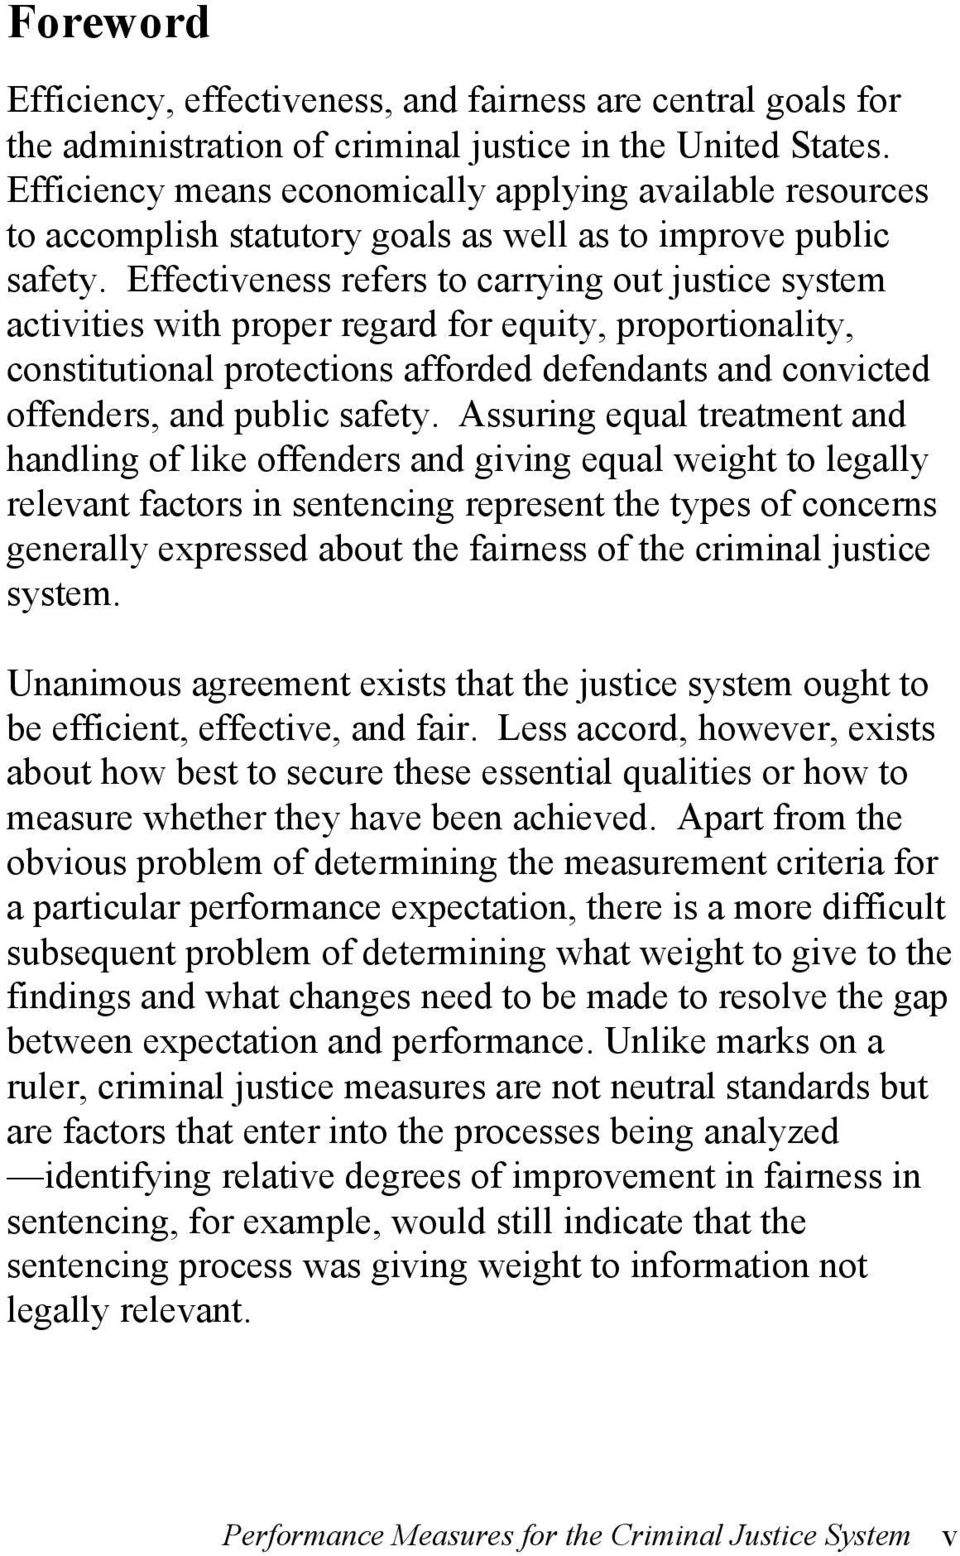 Effectiveness refers to carrying out justice system activities with proper regard for equity, proportionality, constitutional protections afforded defendants and convicted offenders, and public